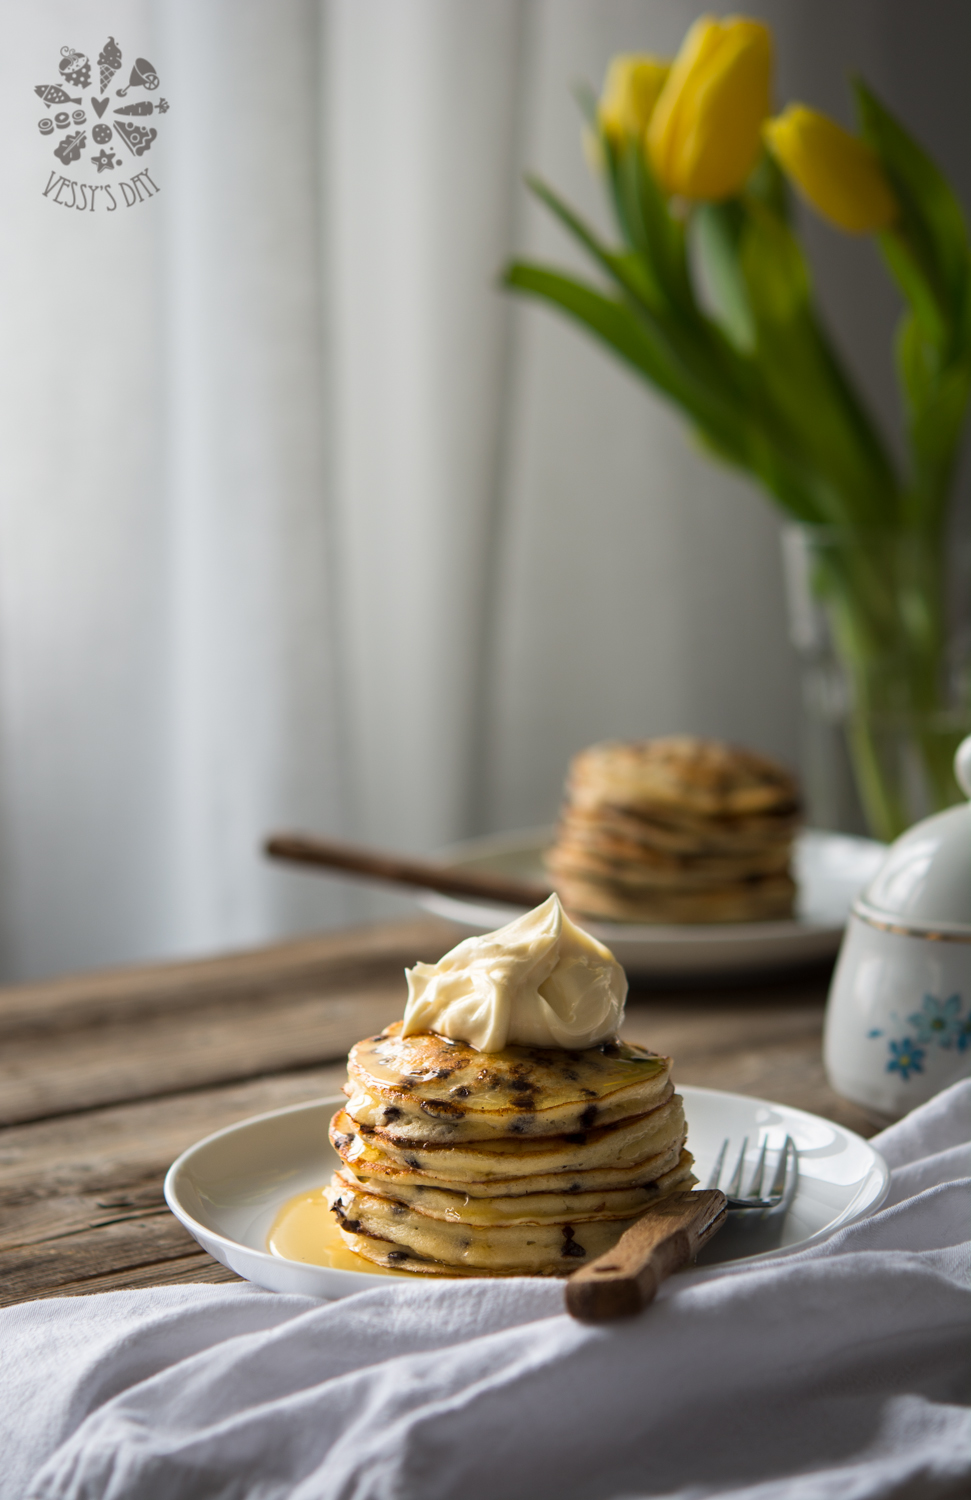 Chocolate chip ricotta pancakes